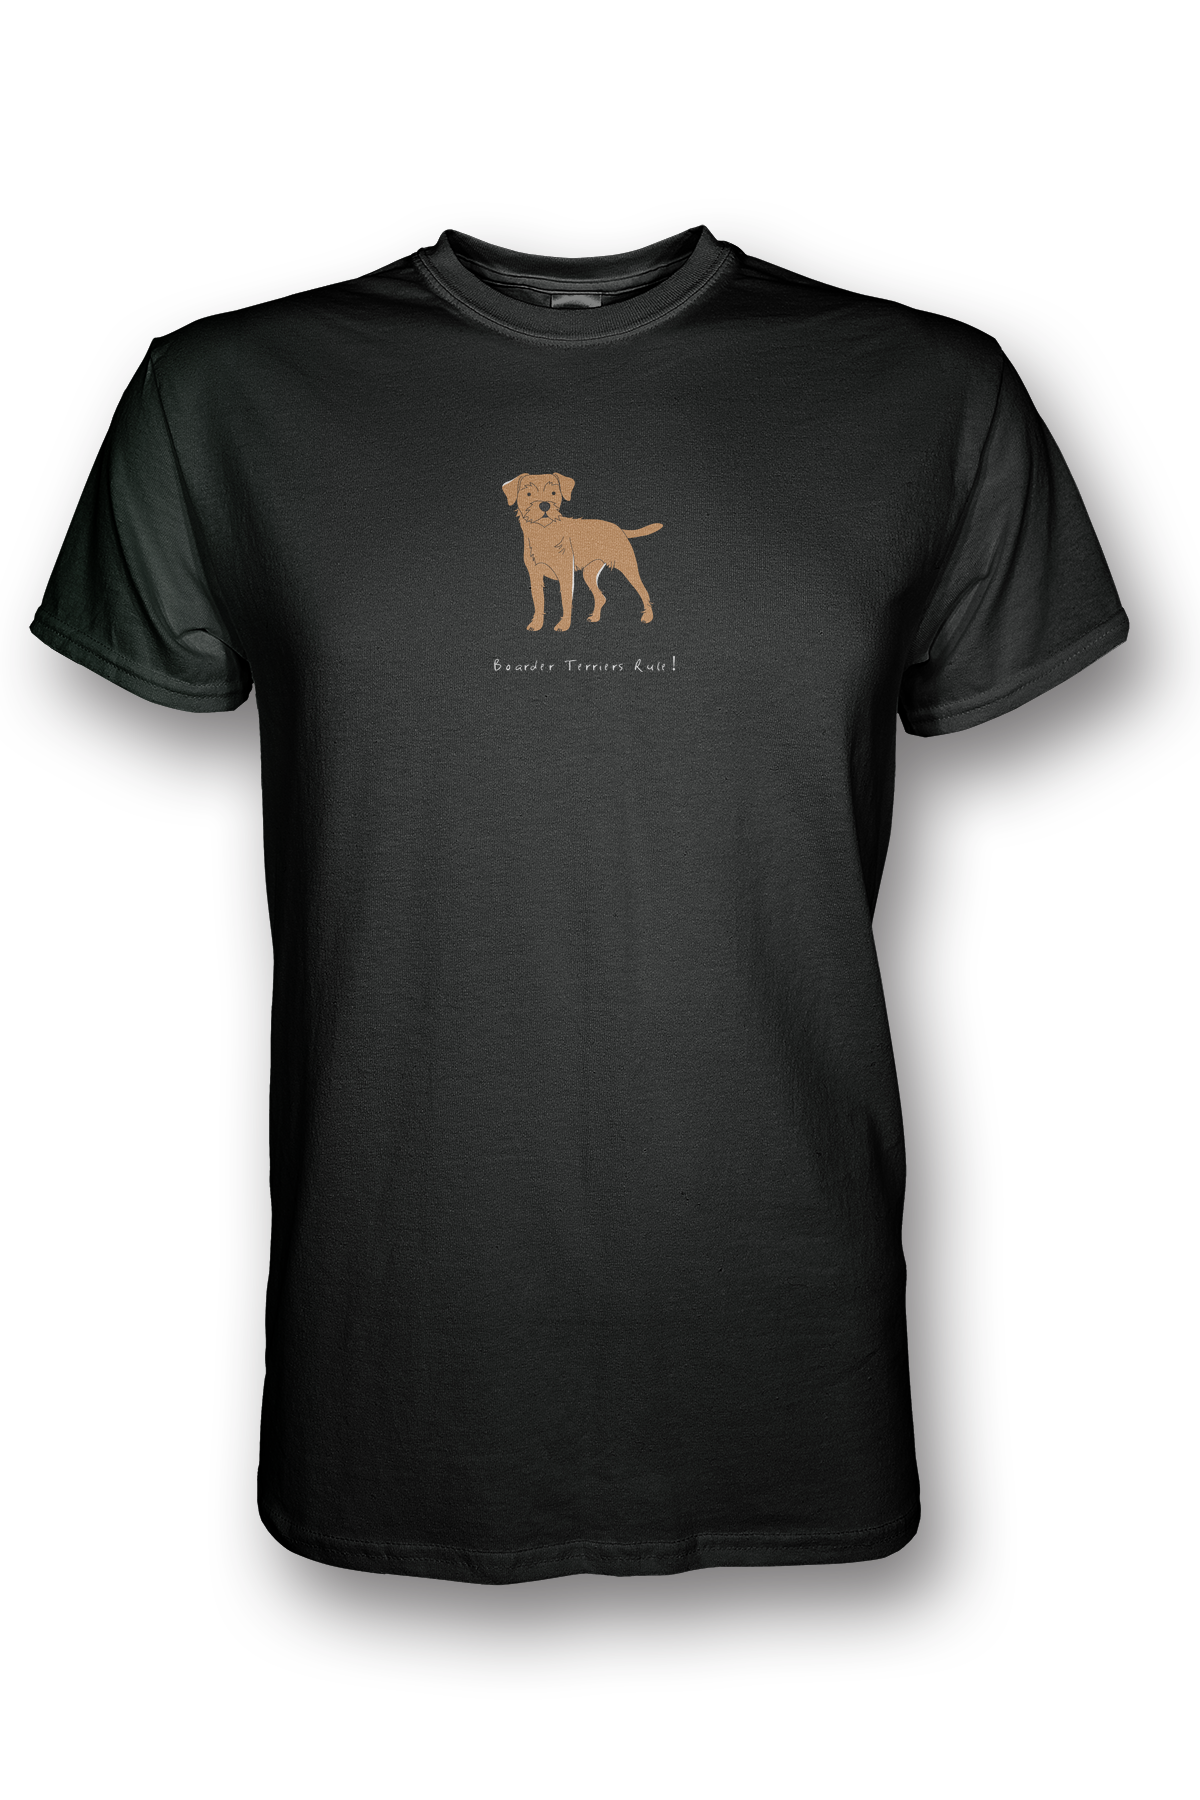 Mens Crew Neck T-Shirt - Boarder Terriers Rule! Black